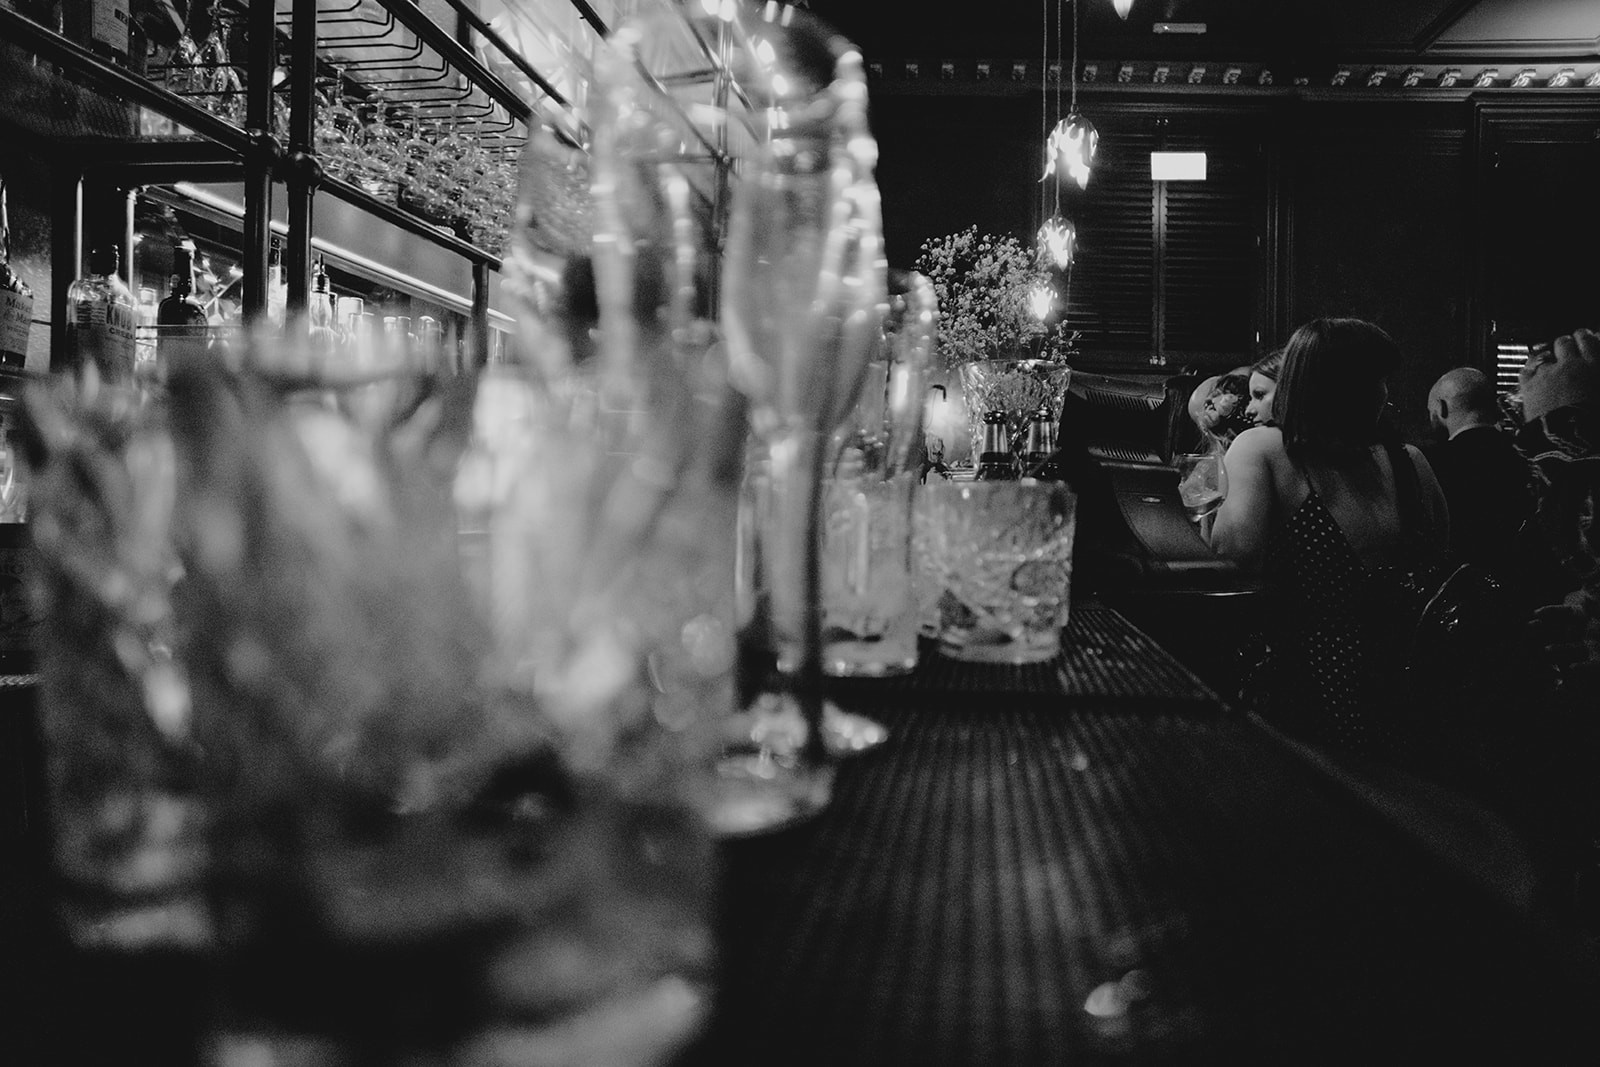 empty glasses on the bar